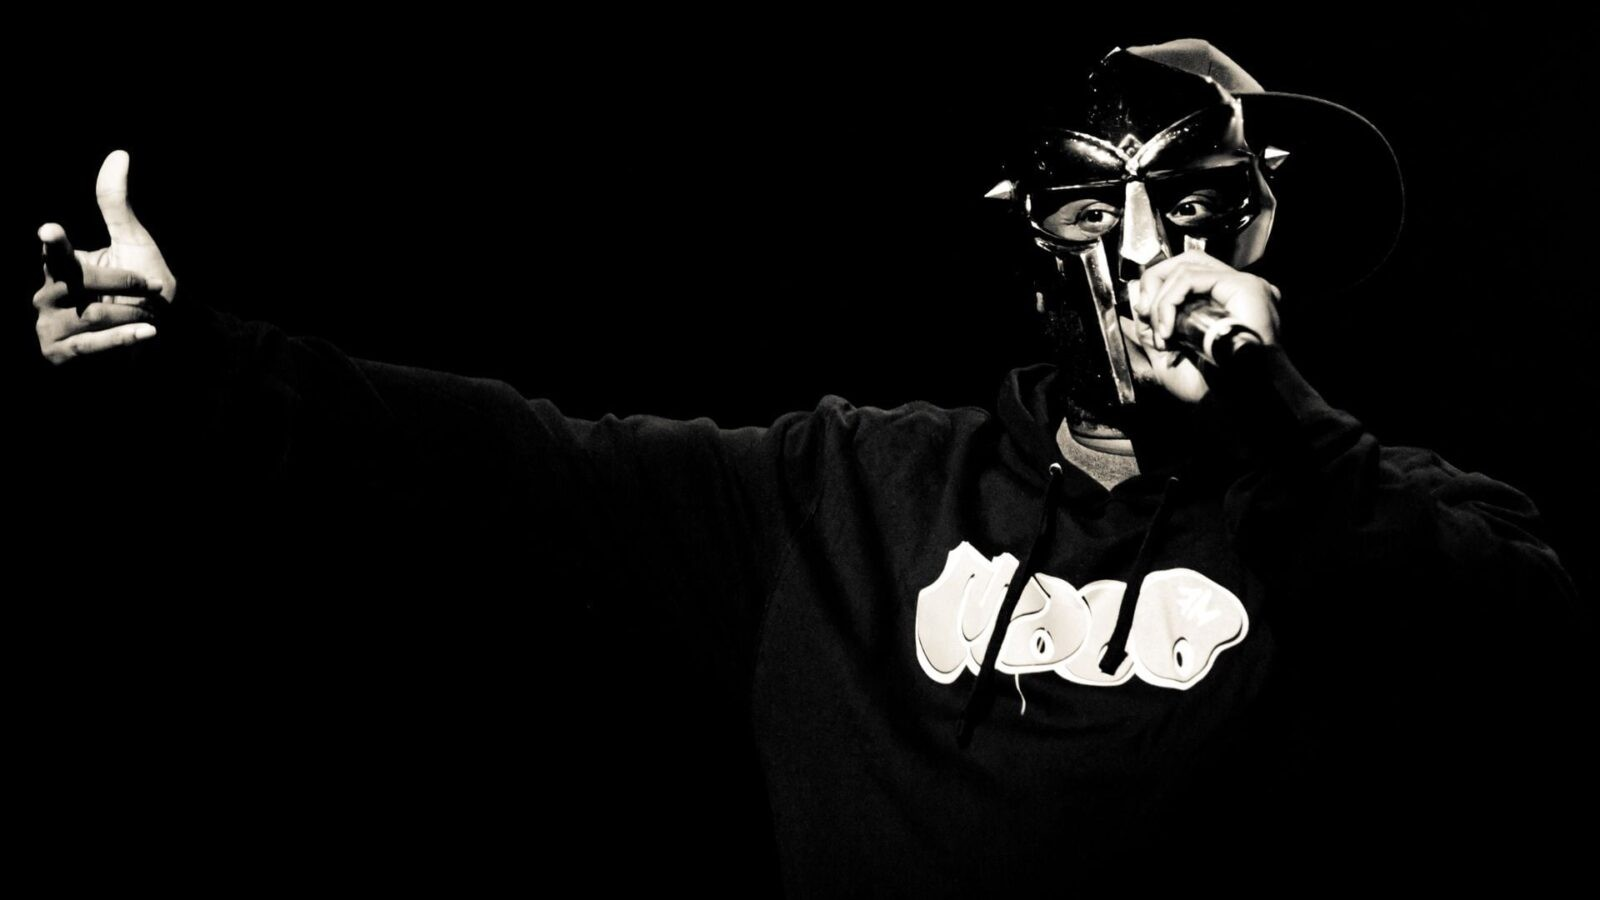 mf doom wallpaper 9 - photo #7